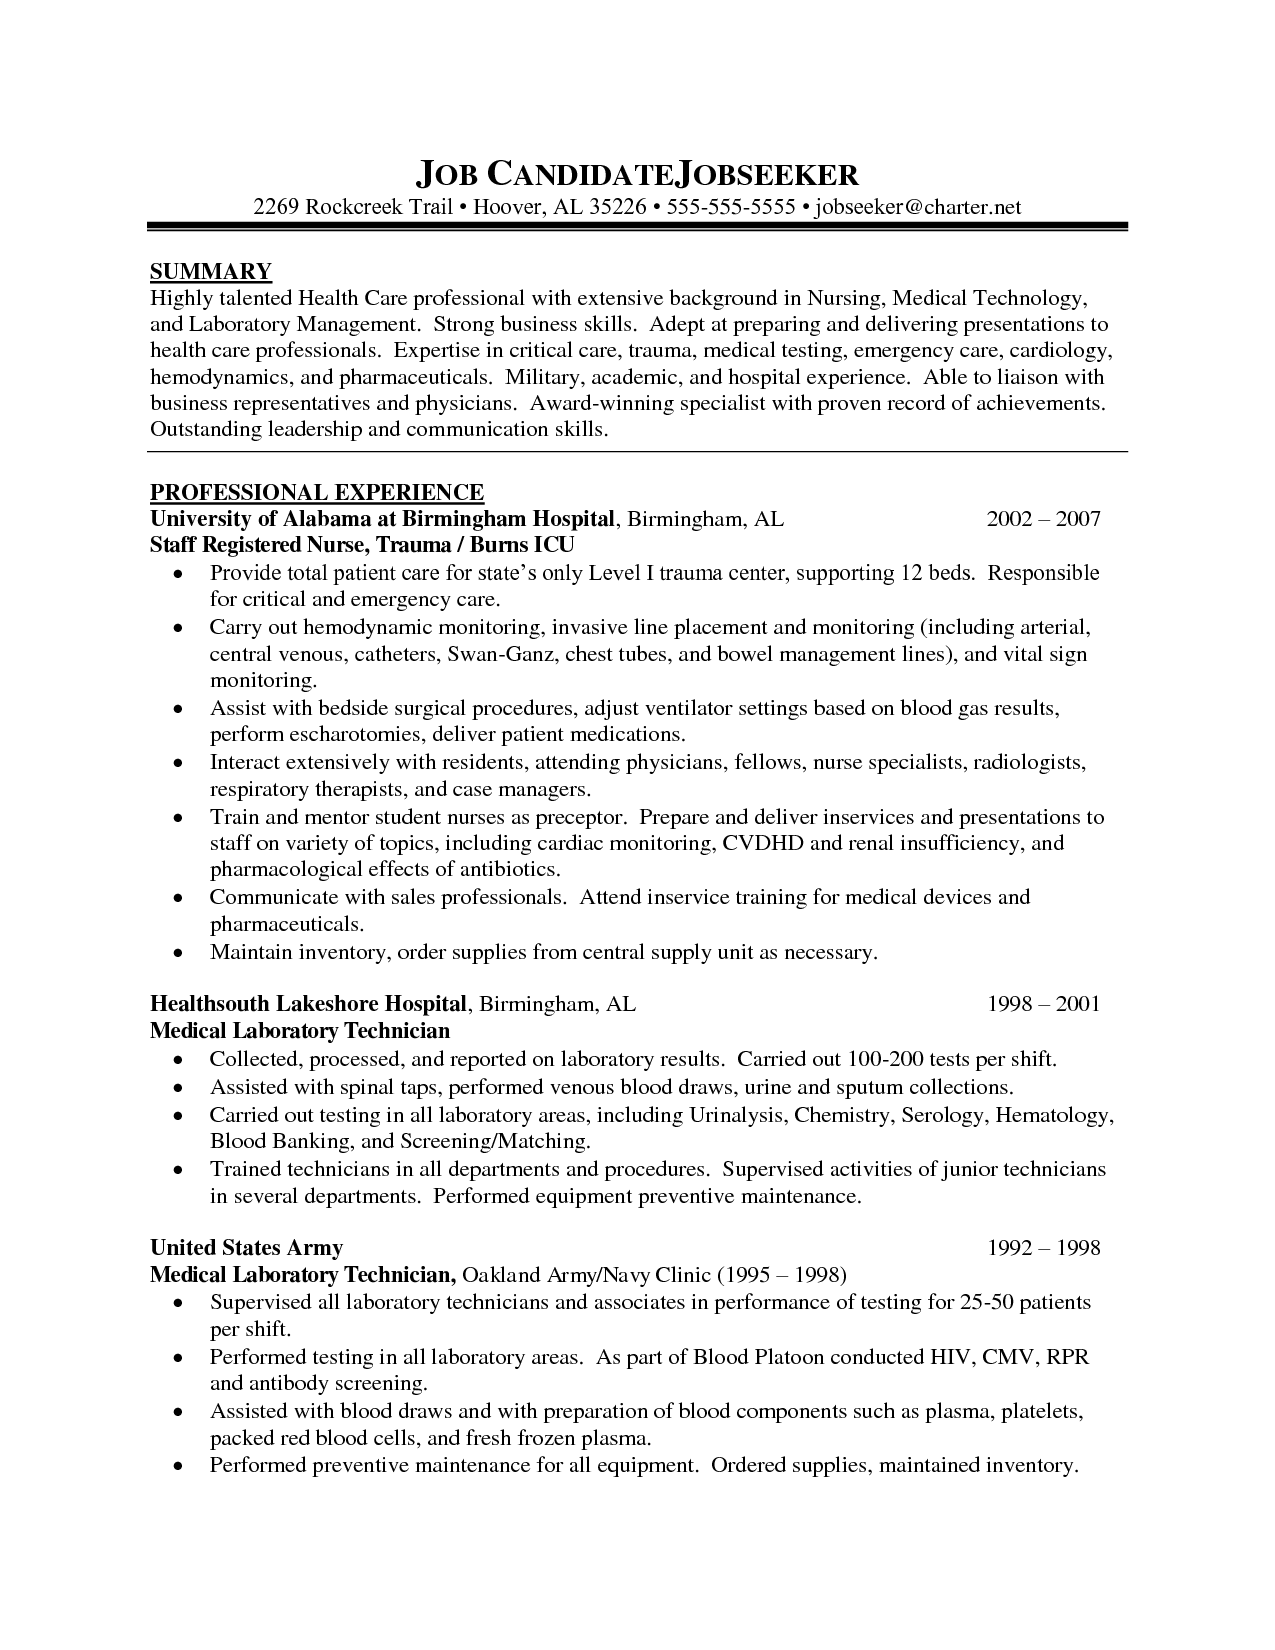 An Objective For A Resume Oncology Nurse Resume Objective  Httpwwwresumecareer